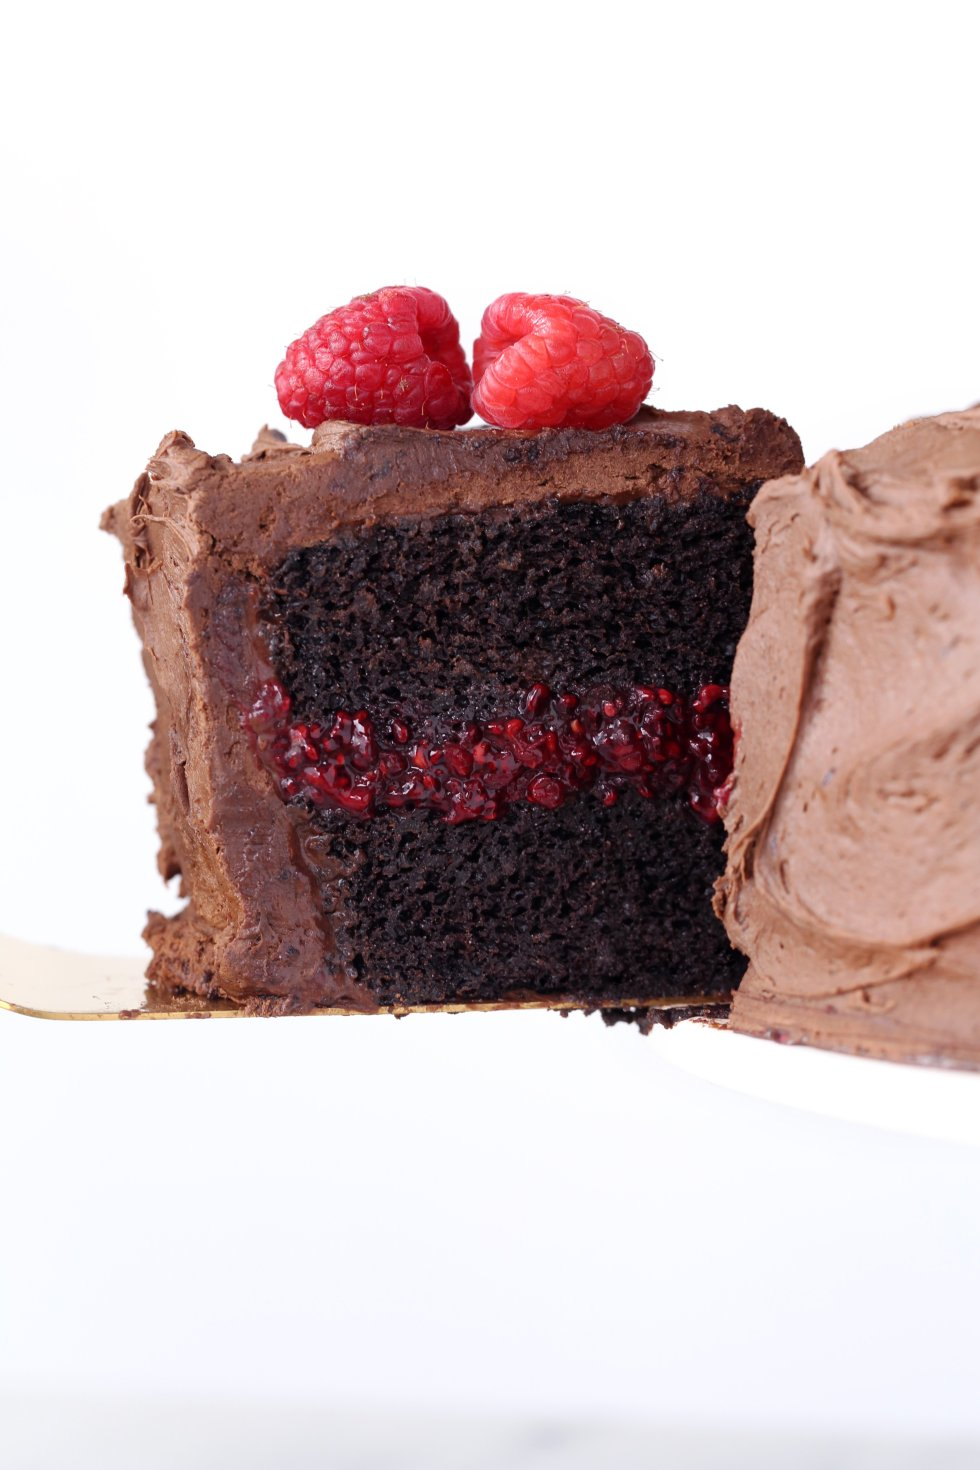 Chocolate Raspberry Layer Cake | Gluten & Dairy Free. Vegan Friendly.